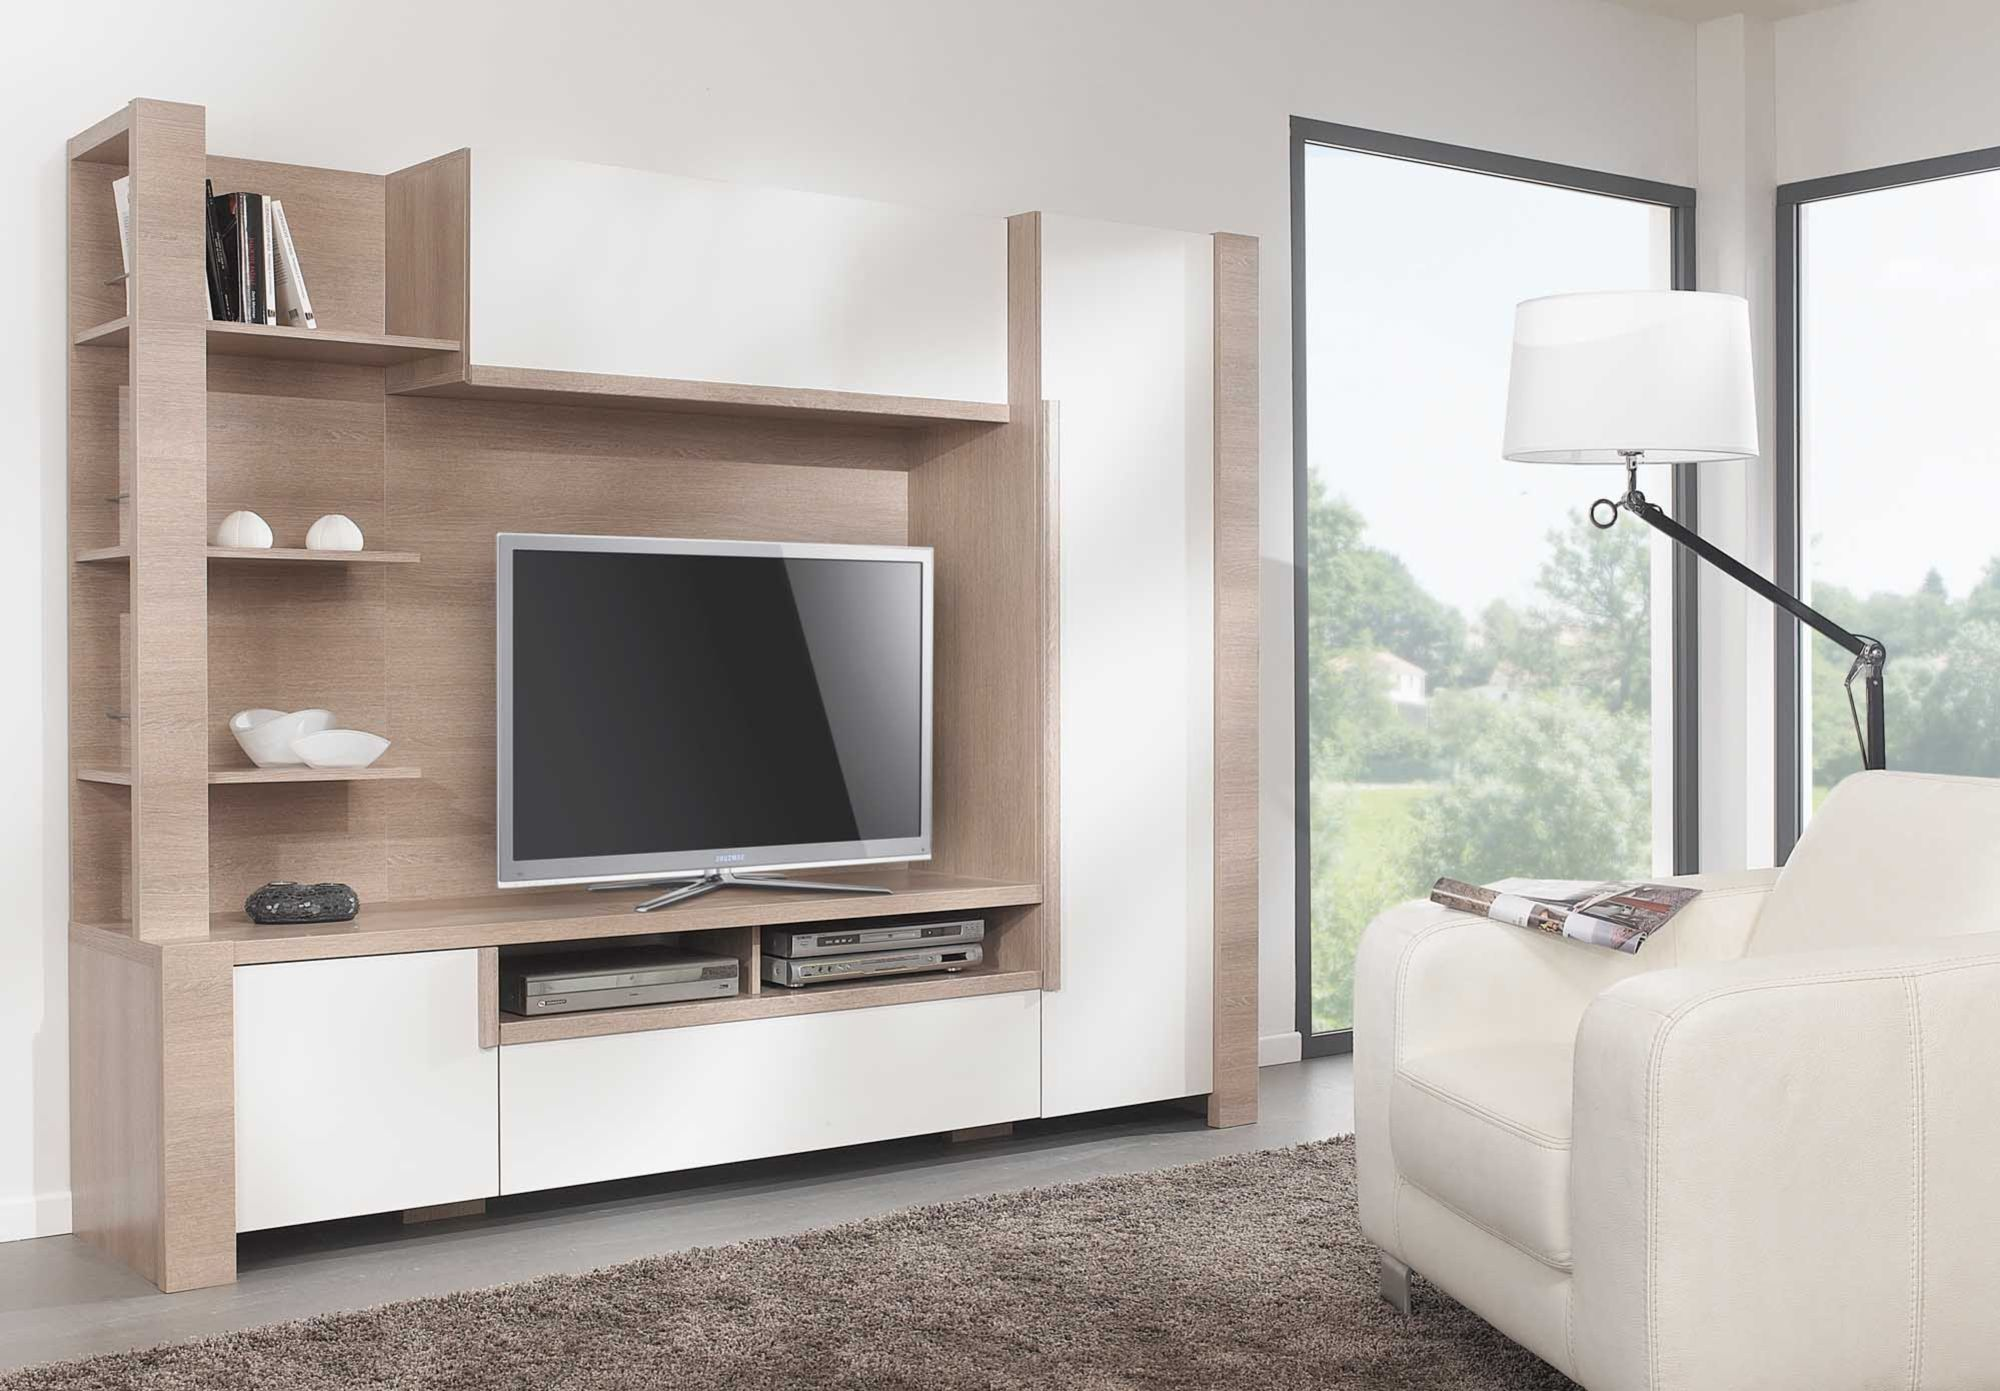 Modular TV Unit   Gautier Lounge Furniture Accessories At Furniture Village    Living Room Storage,